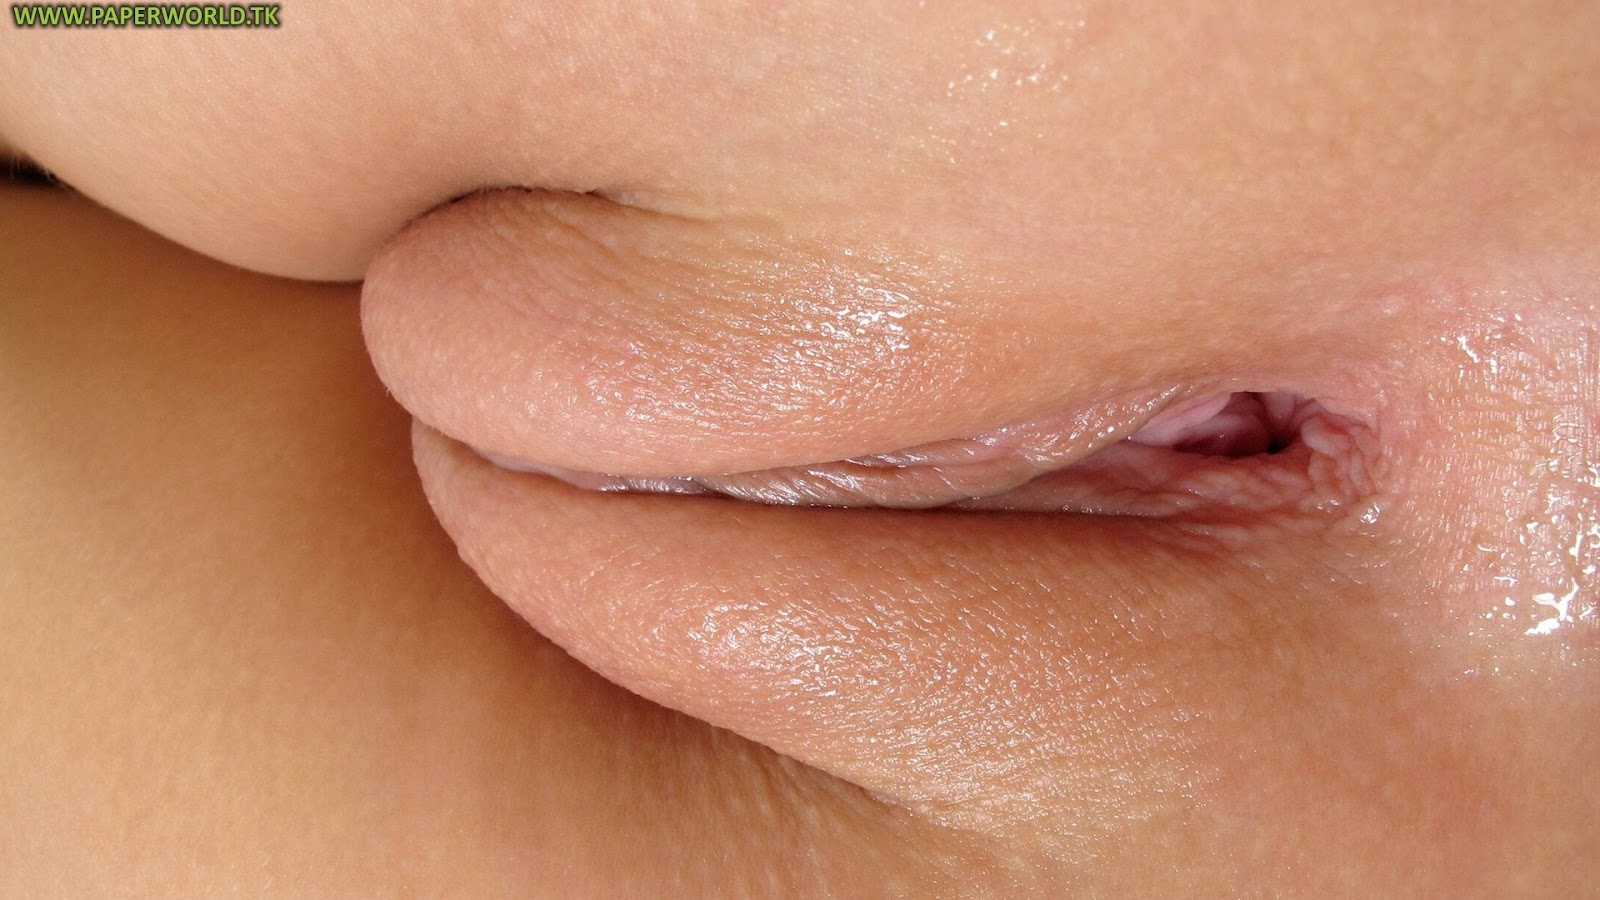 Wonderful perfect shave pussy closeup was